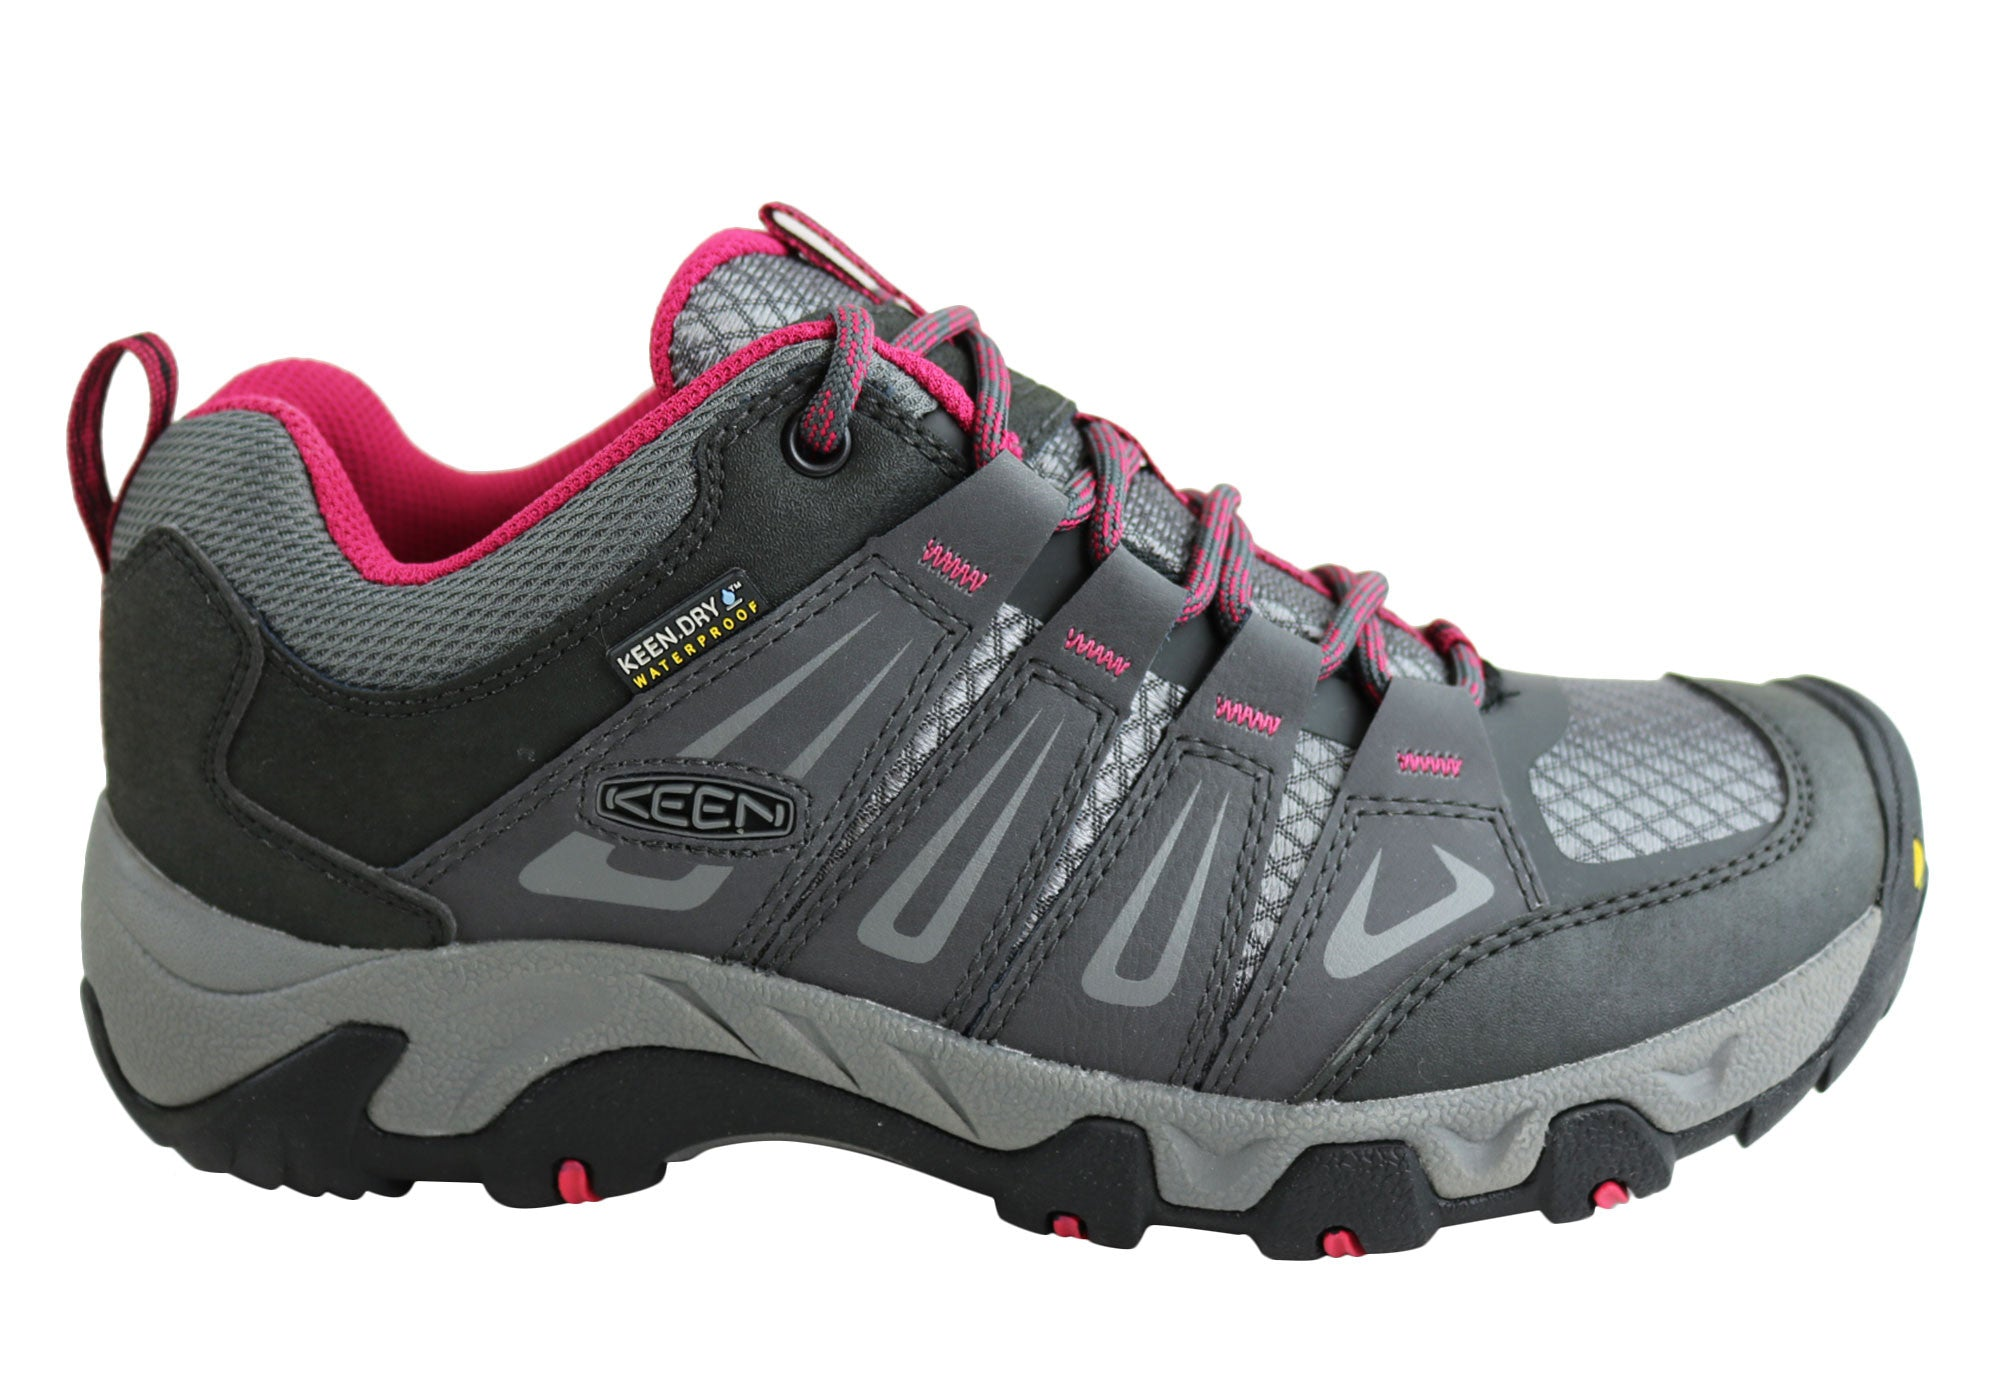 8af2af430f5 Keen Oakridge Waterproof Womens Wide Fit Hiking Shoes